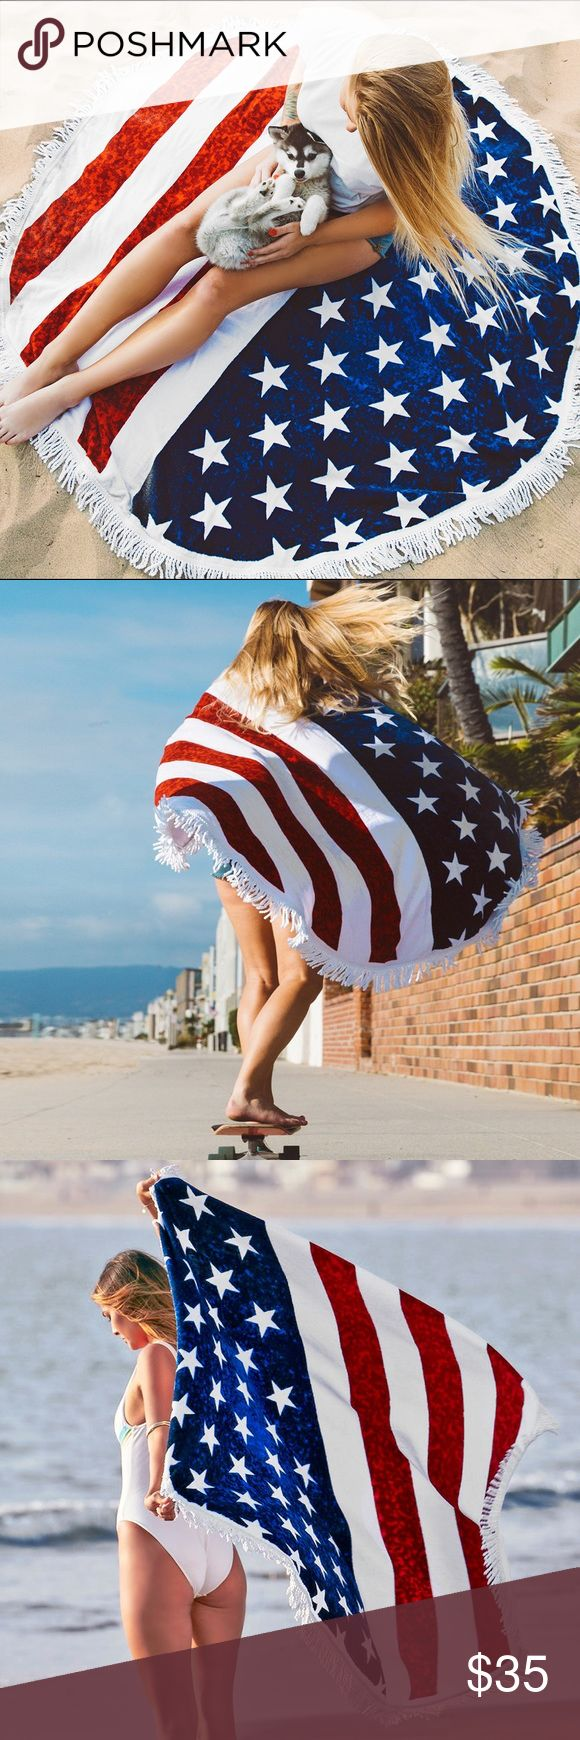 ✨Coming Soon✨ American Flag Round Towel Comment to reserve. Limited quantities! Gypsy Los Angeles Other